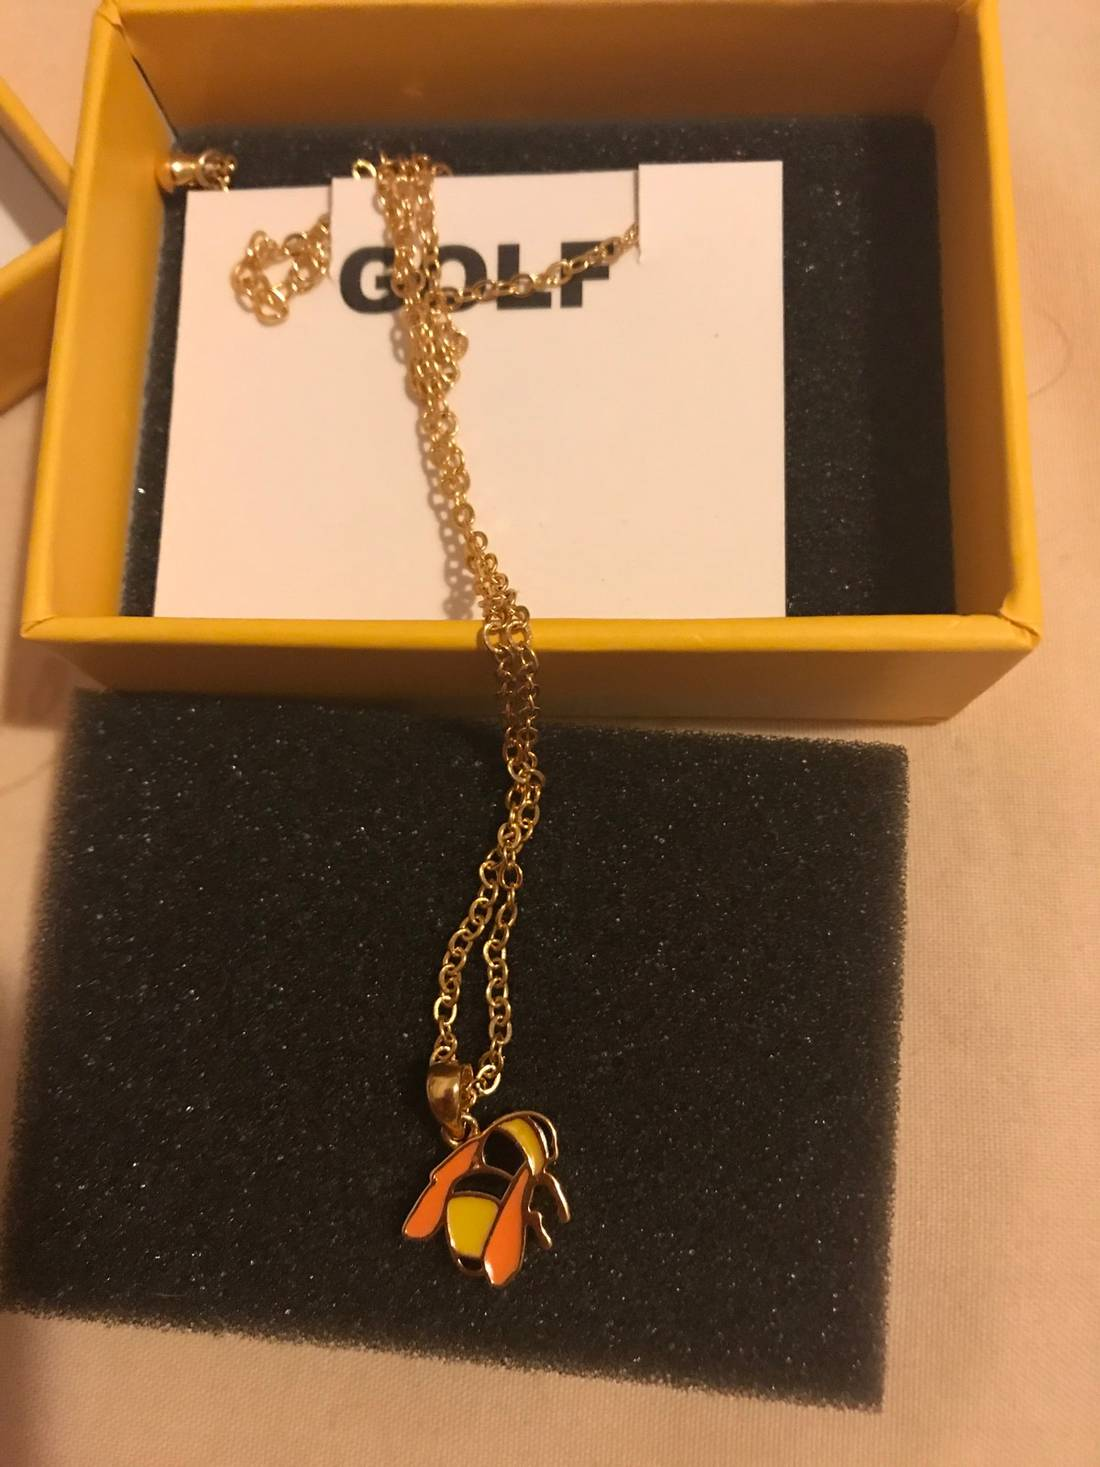 Golf wang bee necklace size one size jewelry watches for sale golf wang bee necklace size one size 1 aloadofball Image collections